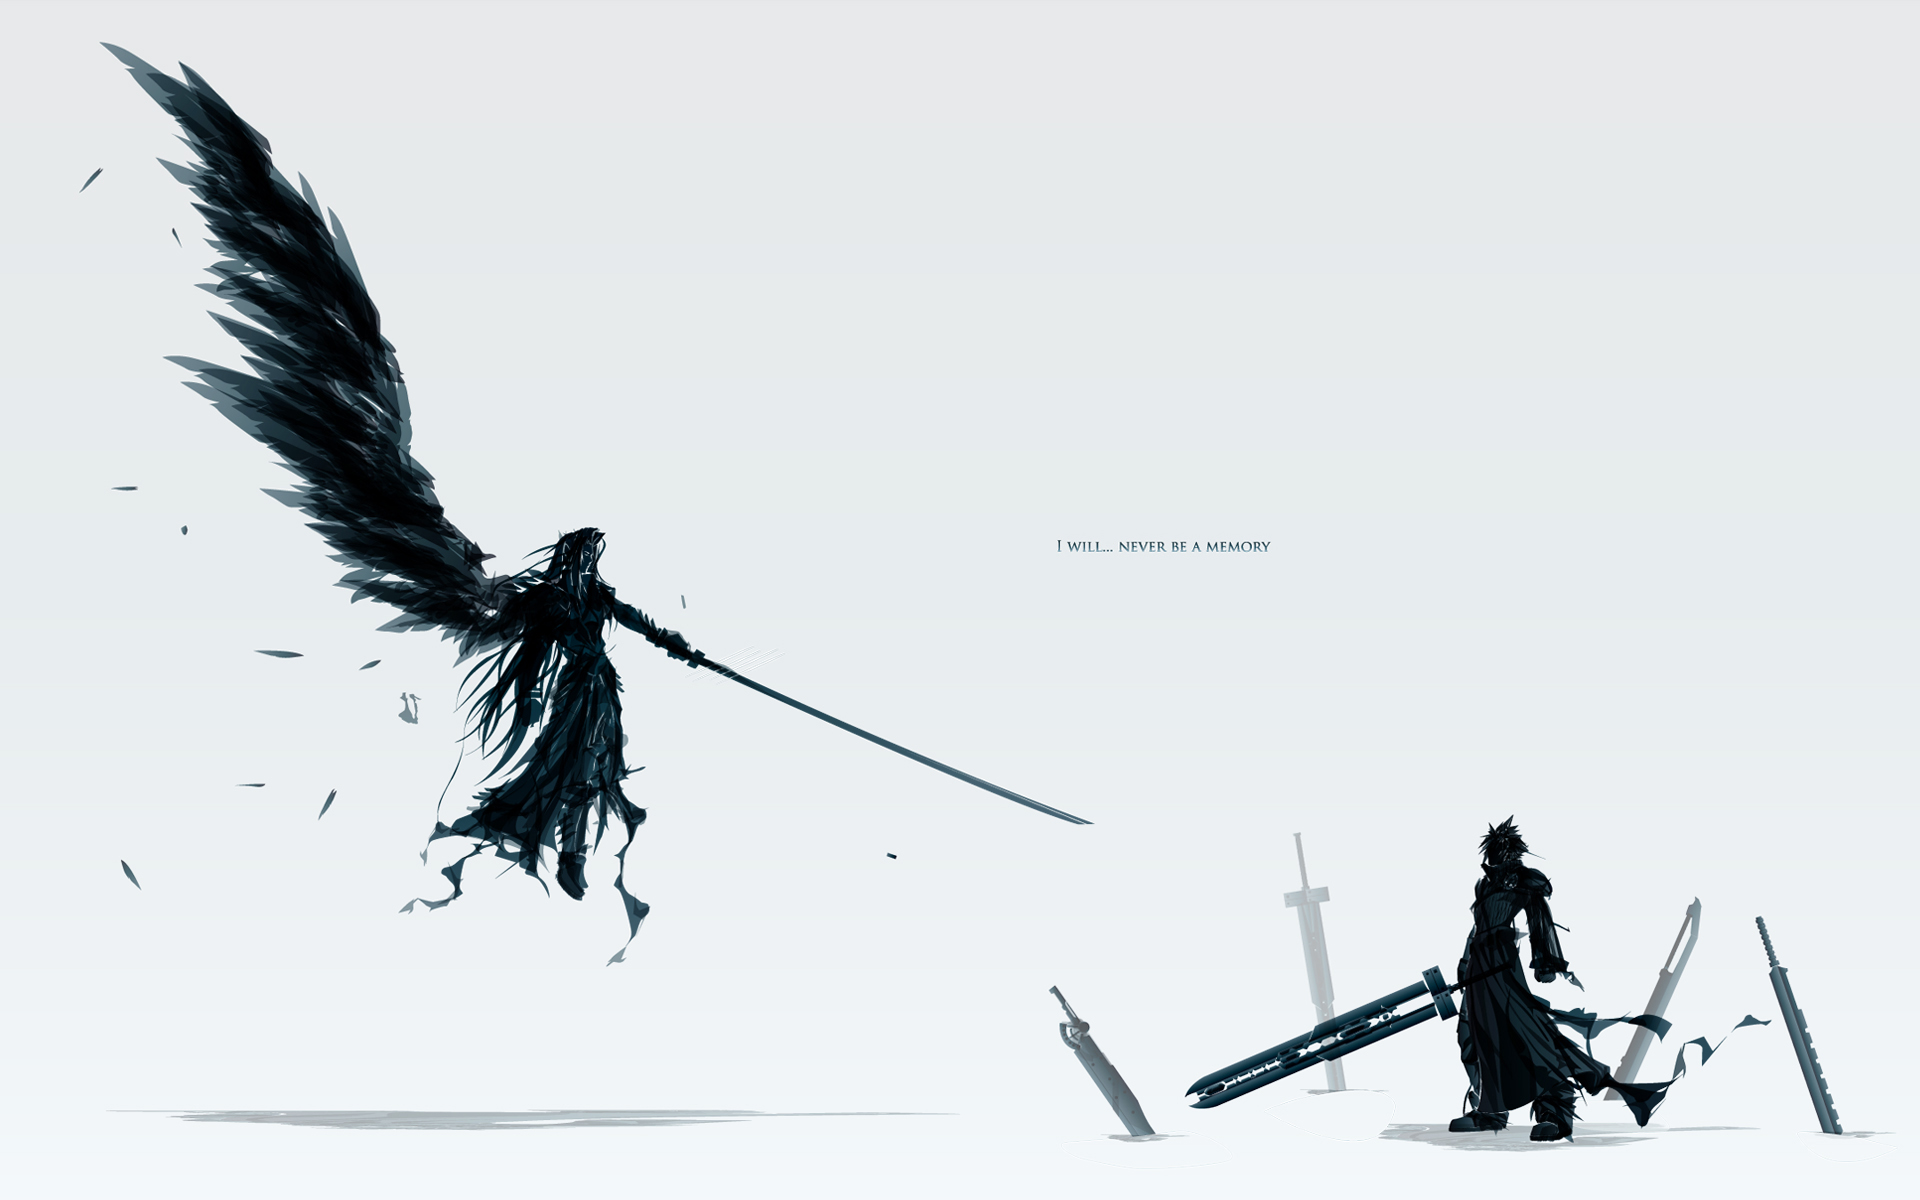 89 final fantasy vii advent children hd wallpapers backgrounds - 90 Final Fantasy Vii Advent Children Hd Wallpapers Backgrounds Wallpaper Abyss